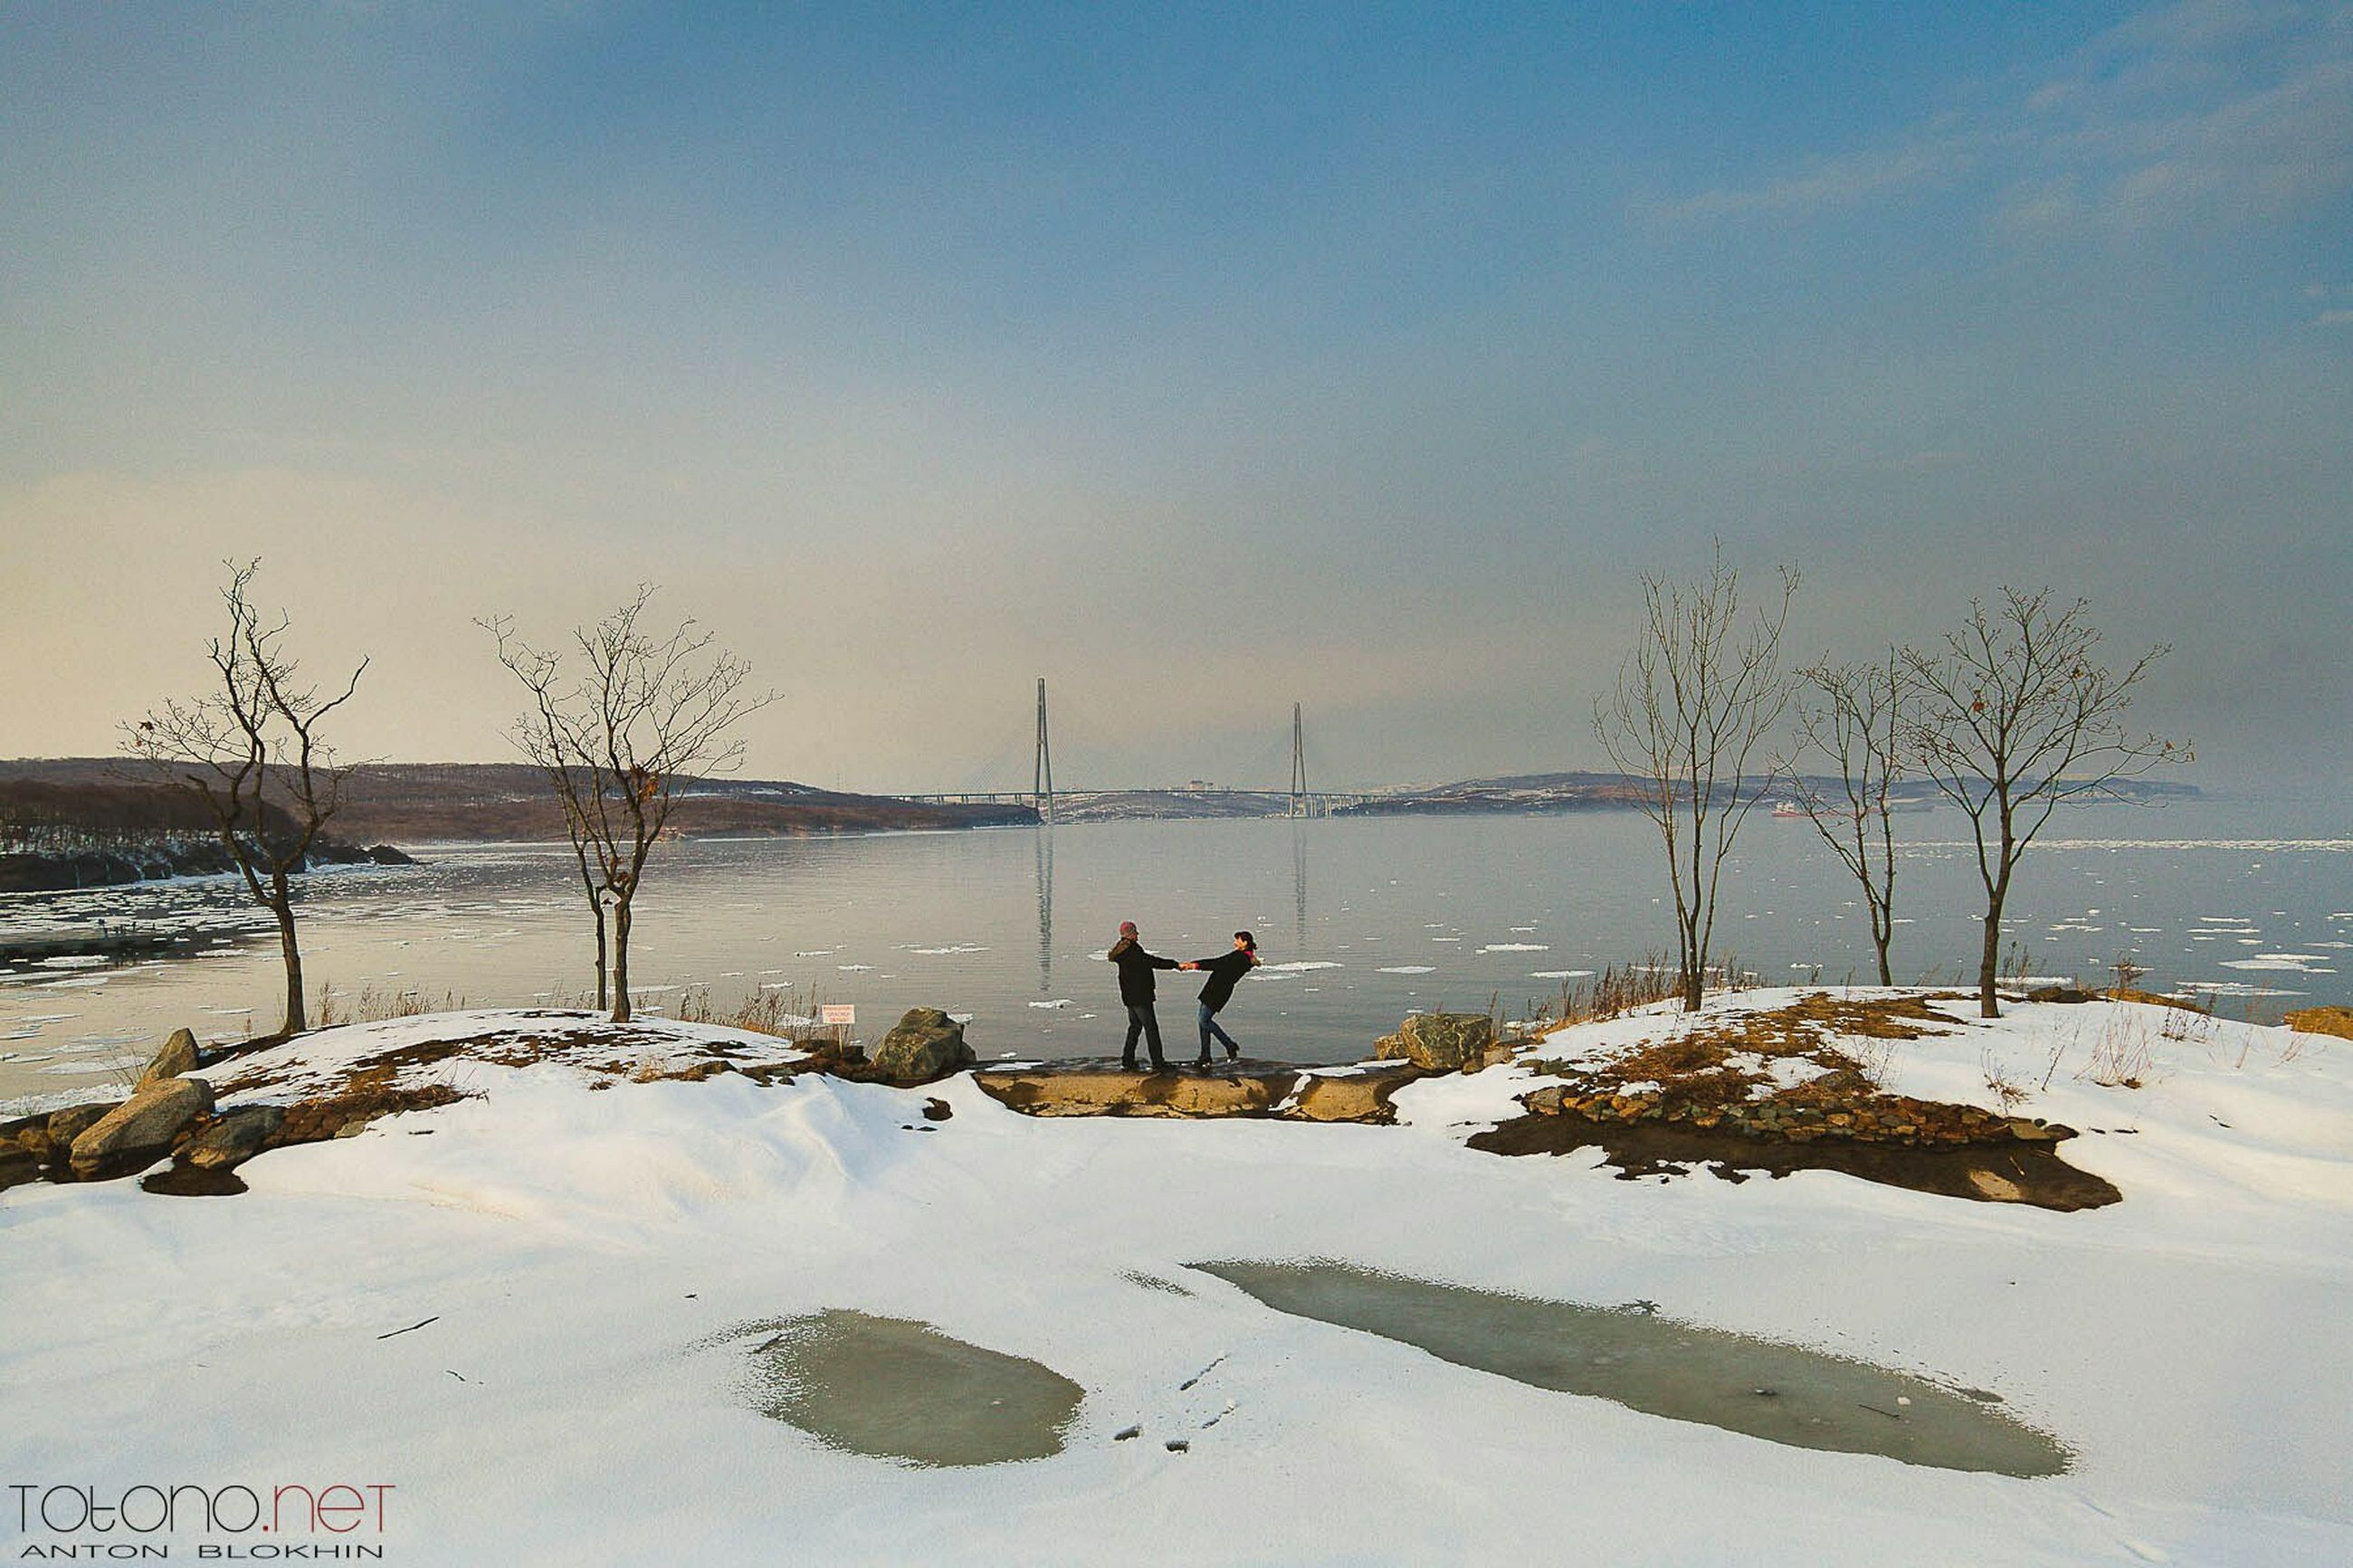 water, tranquility, tranquil scene, scenics, nature, beauty in nature, sky, sea, lake, beach, shore, reflection, horizon over water, bare tree, day, idyllic, outdoors, no people, plant, non-urban scene